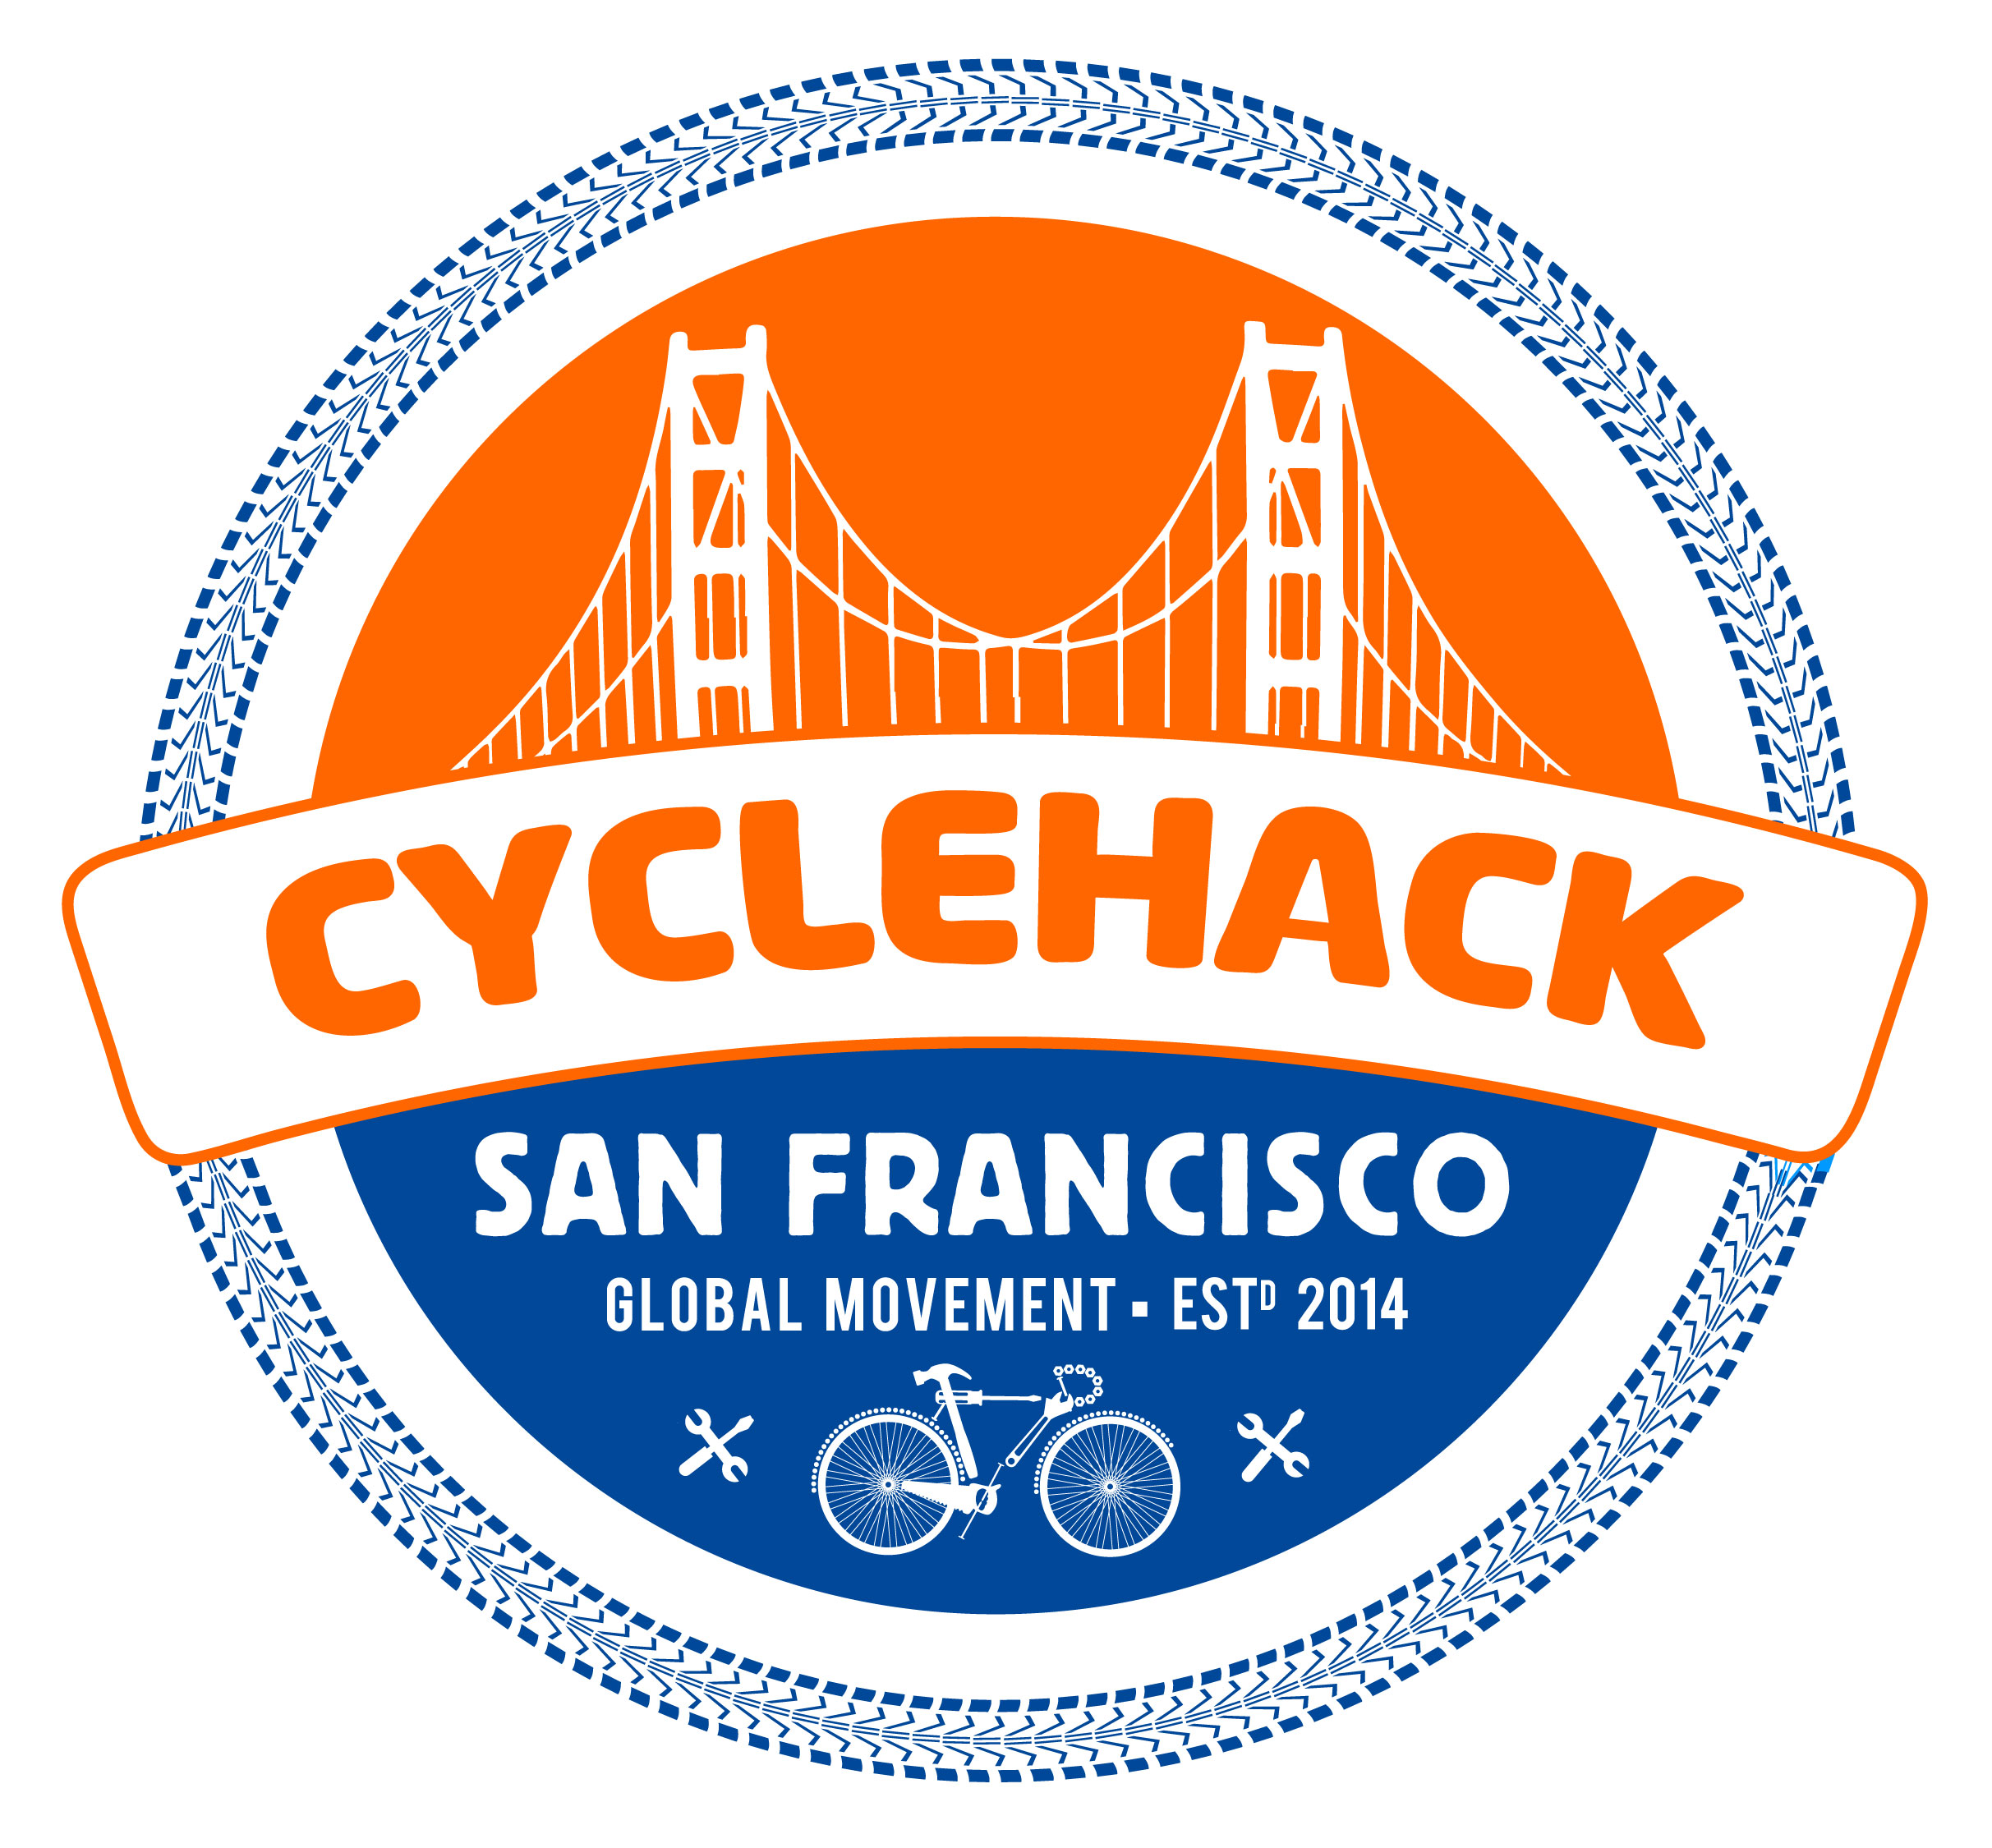 David Lee - LOGO_CYCLEHACK_SF_05-1-Outlined.jpg